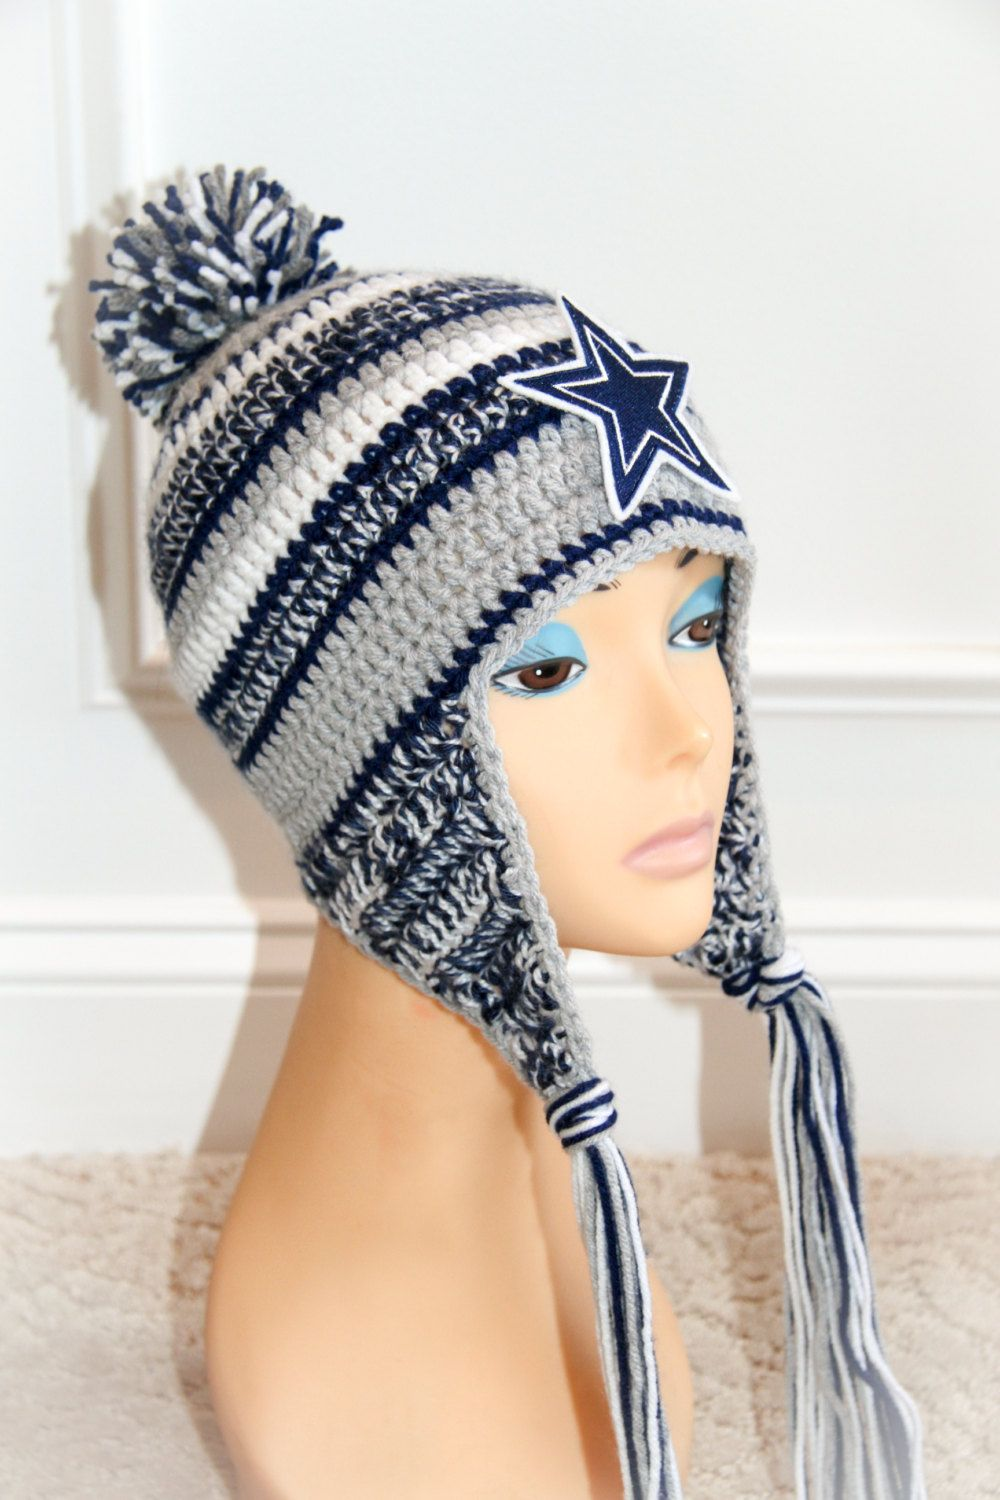 03ca497d937 ... knit australia dallas cowboys nfl official on the field new era  inspired crochet hat pattern.